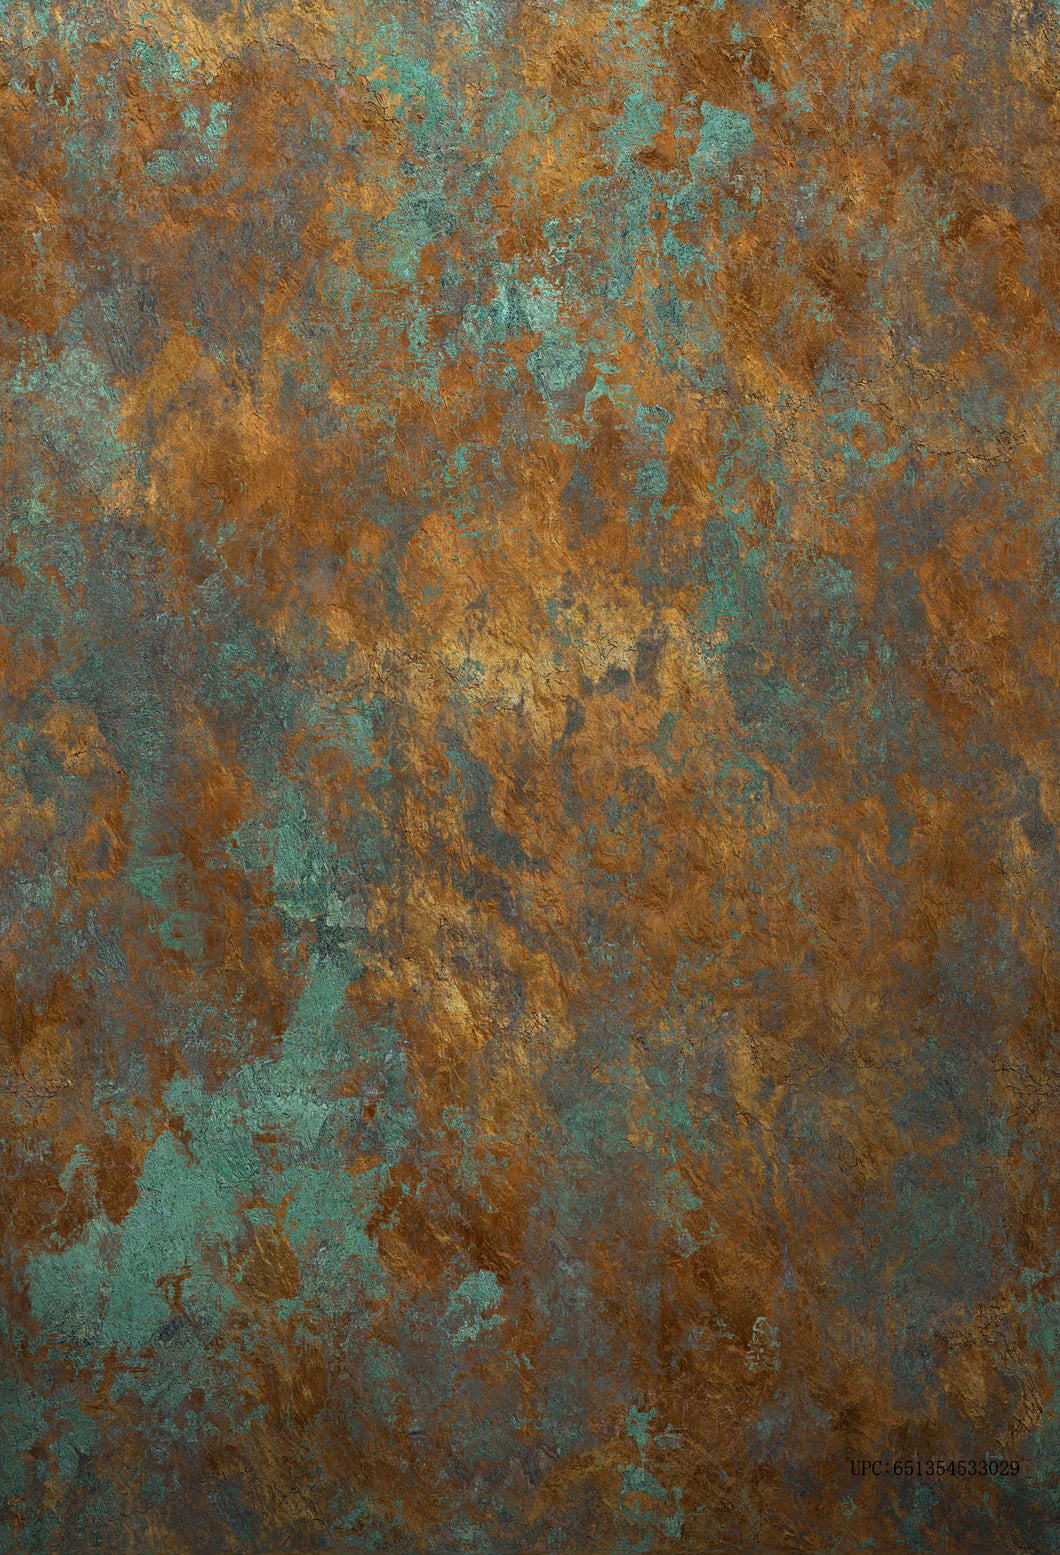 Kate Abstract Old Rusty Texture Background Microfiber Photography Backgrounds Portrait Backdrop for Photo Studio